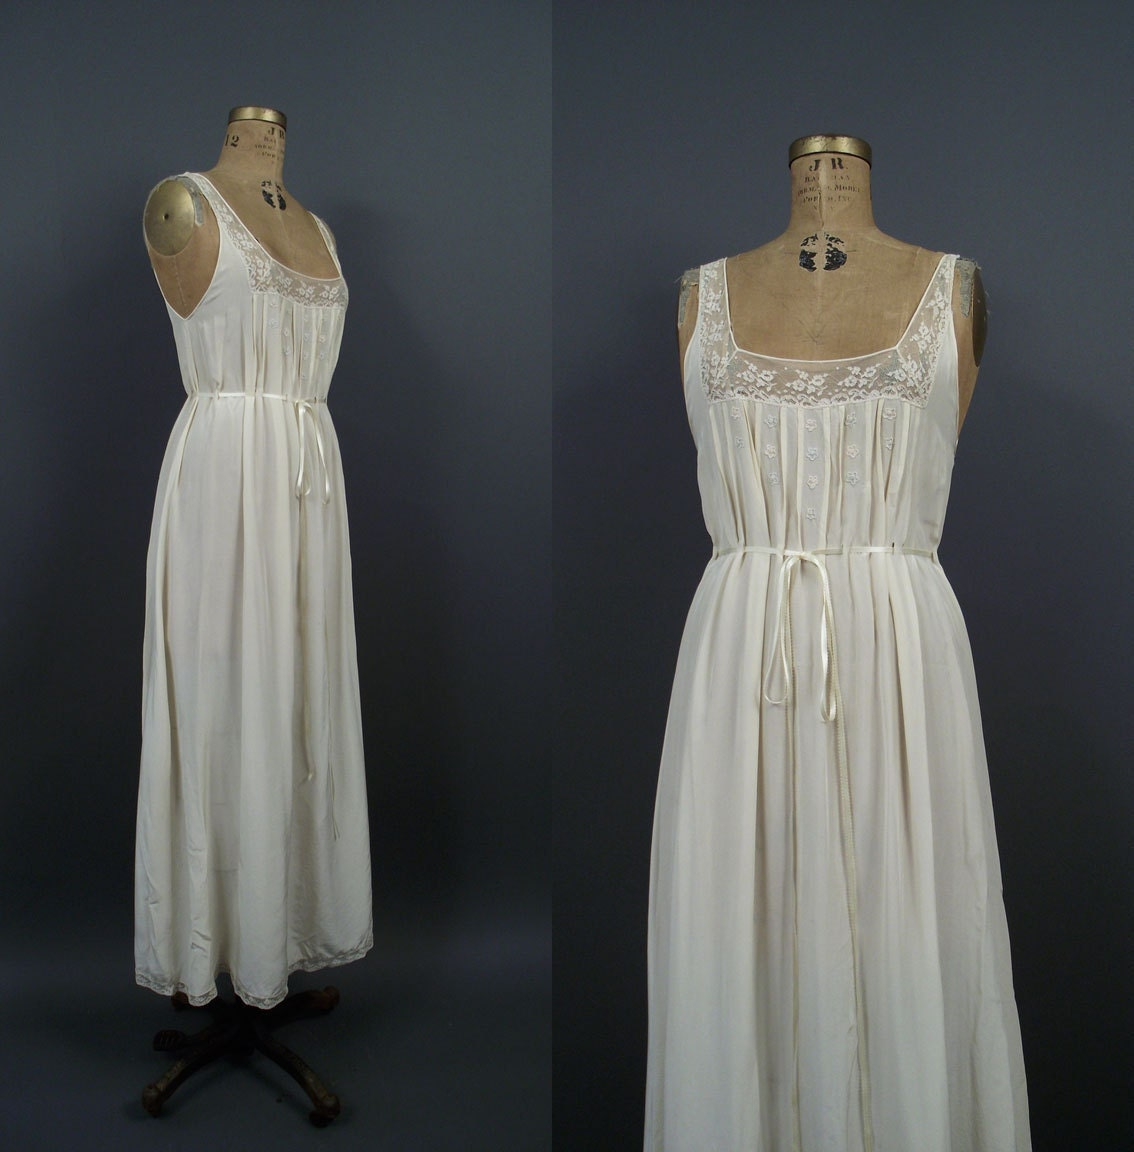 1940s Dressing Gown: 1940s Silk Nightgown / 40s Cream Embroidered Night Dress